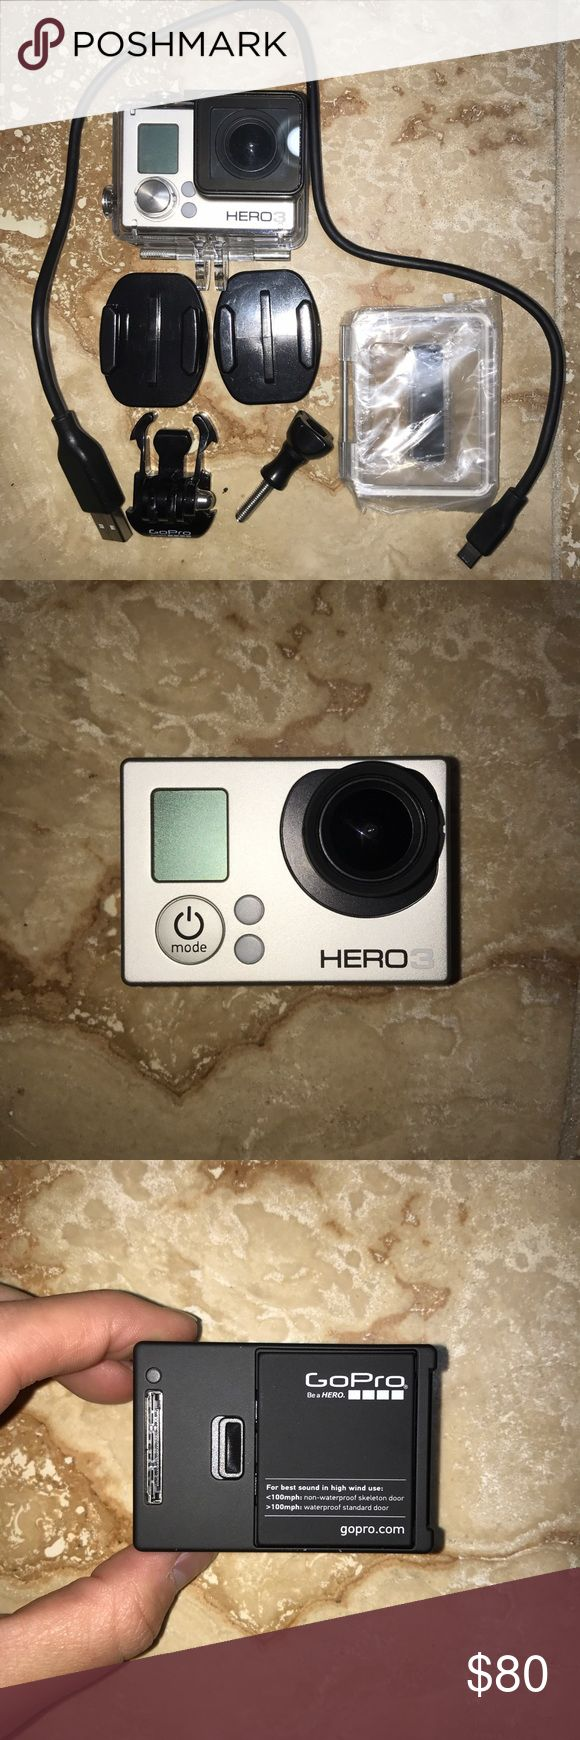 GoPro Hero 3 Camera Silver Edition Gently used GoPro Hero 3 Silver Edition. Works perfectly and comes with charger cable, 1 waterproof housing case, 1 skeleton back door, 2 mounts, 1 mounting buckle, and 1 short thumb screw :) GoPro Other